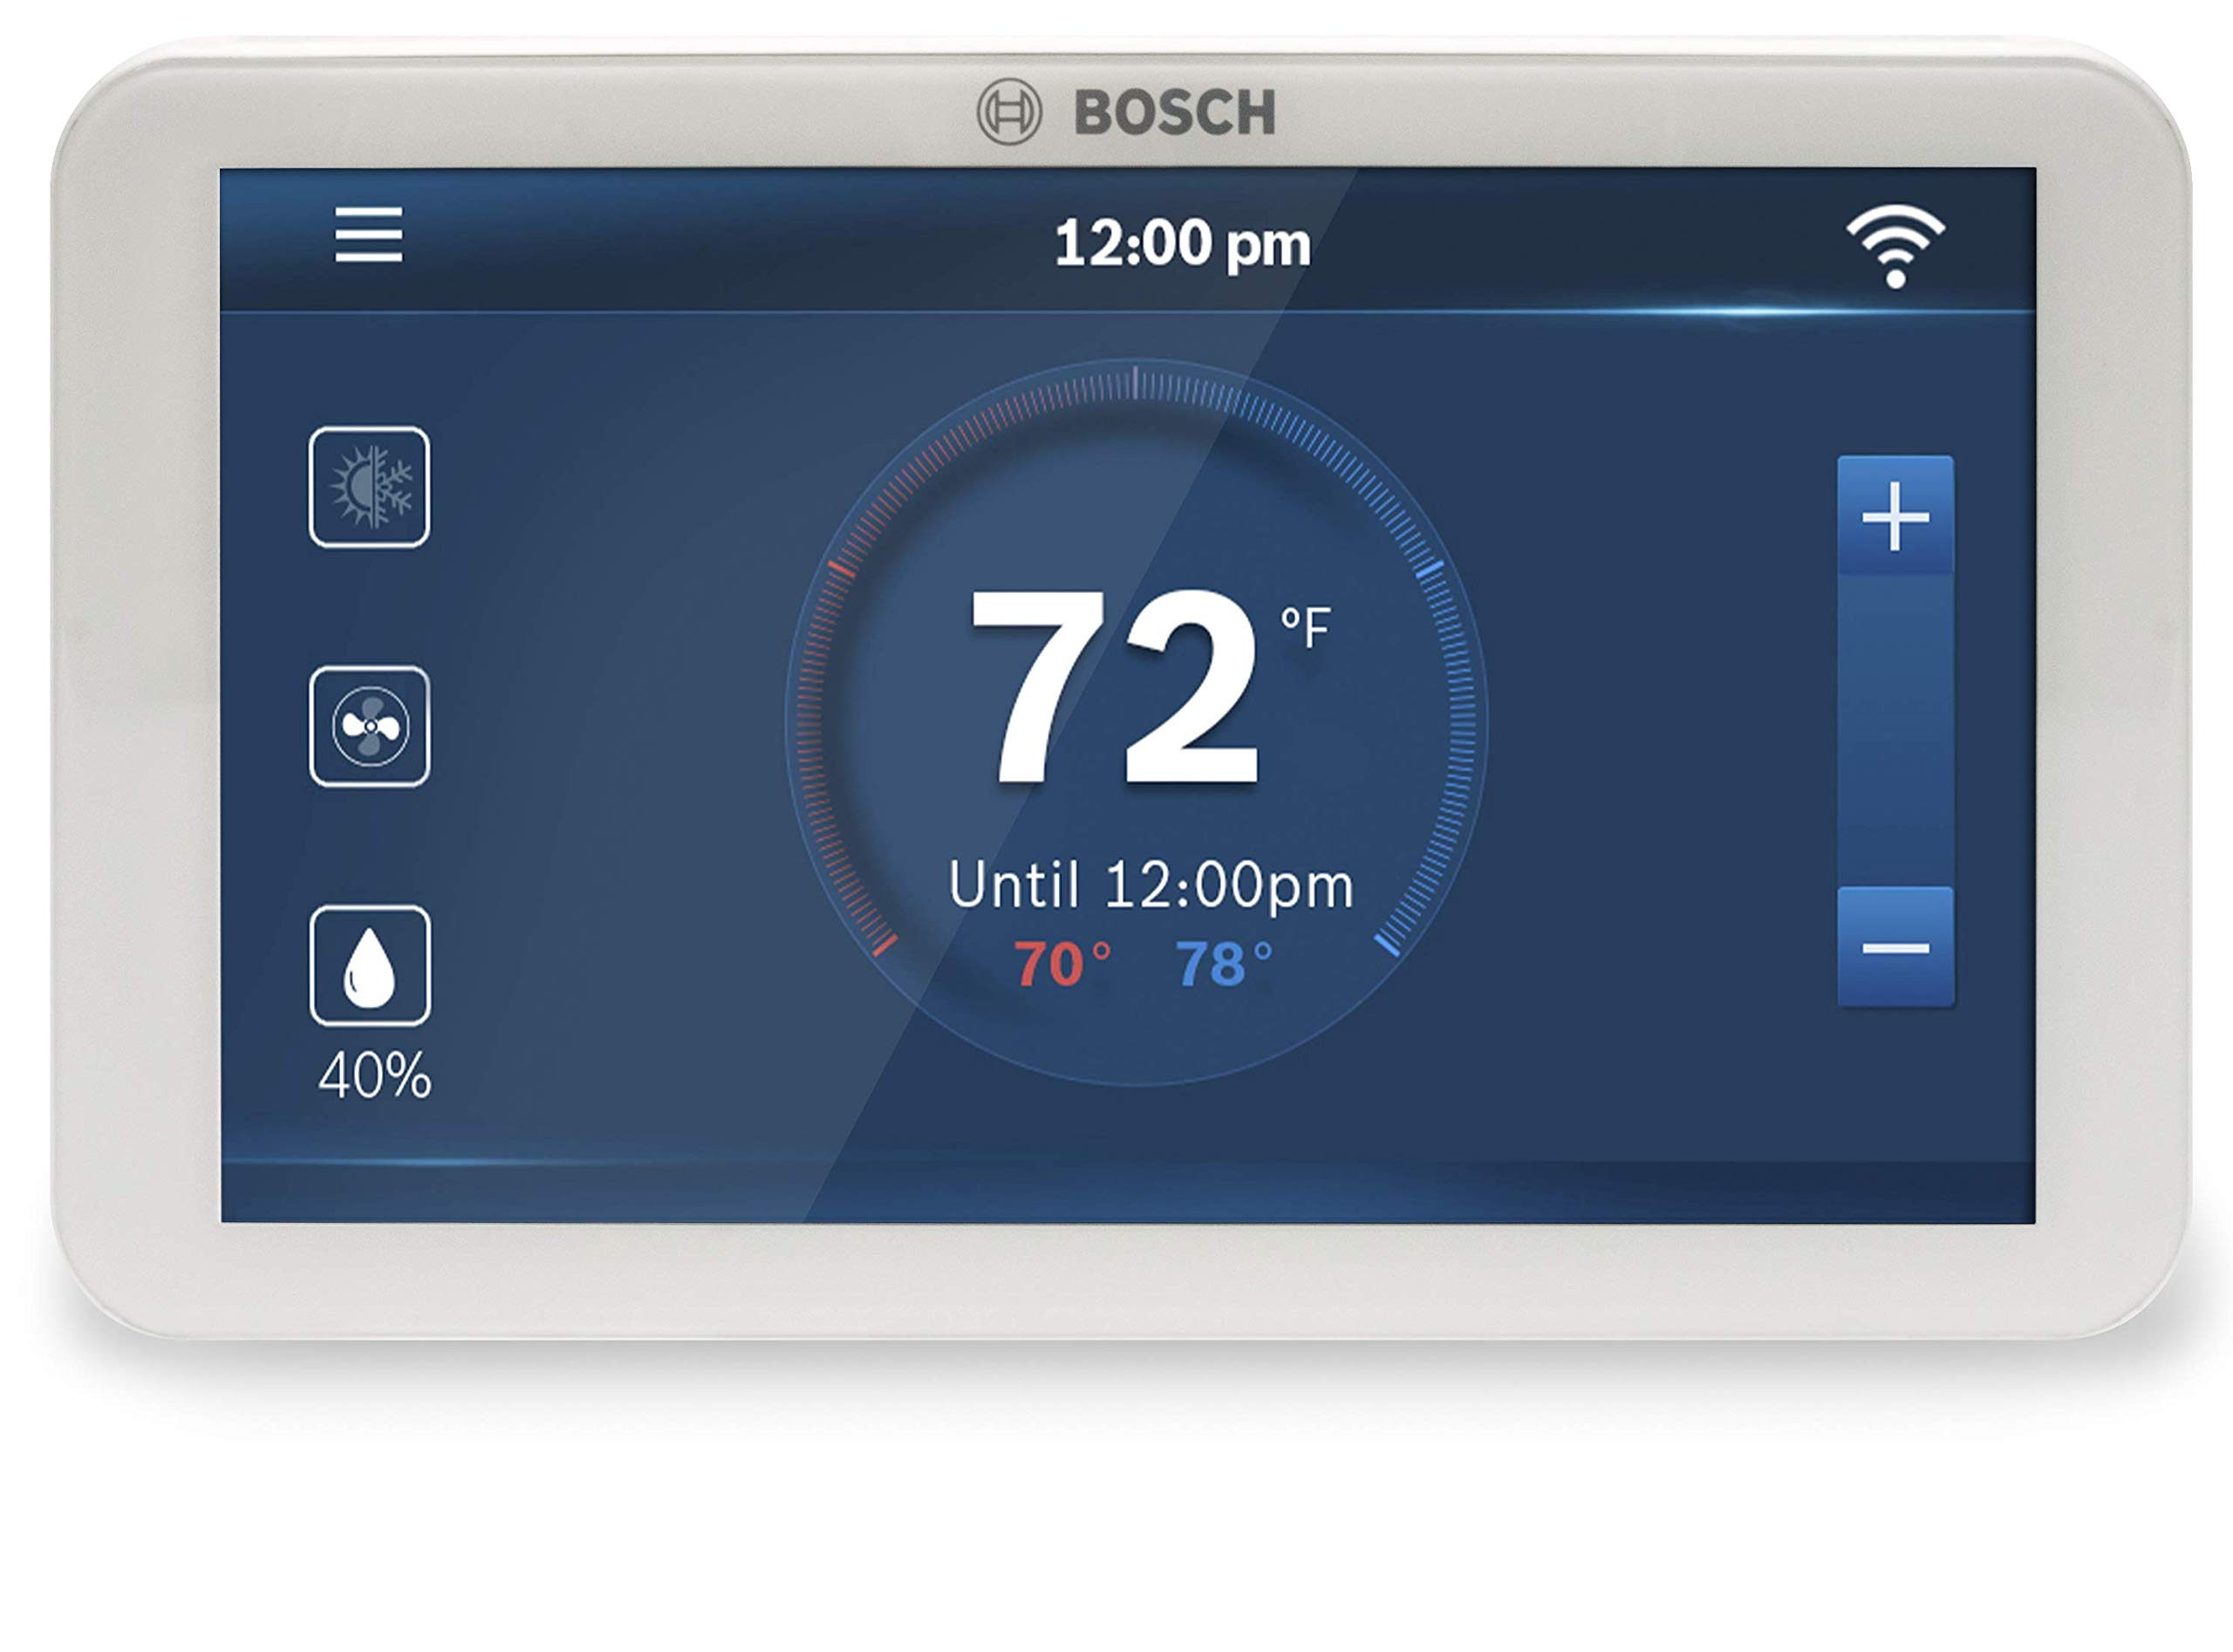 Bosch BCC100 Connected Control Smart Phone Wi-Fi Thermostat - Compatible with Alexa - Touch Screen by Bosch Thermotechnology